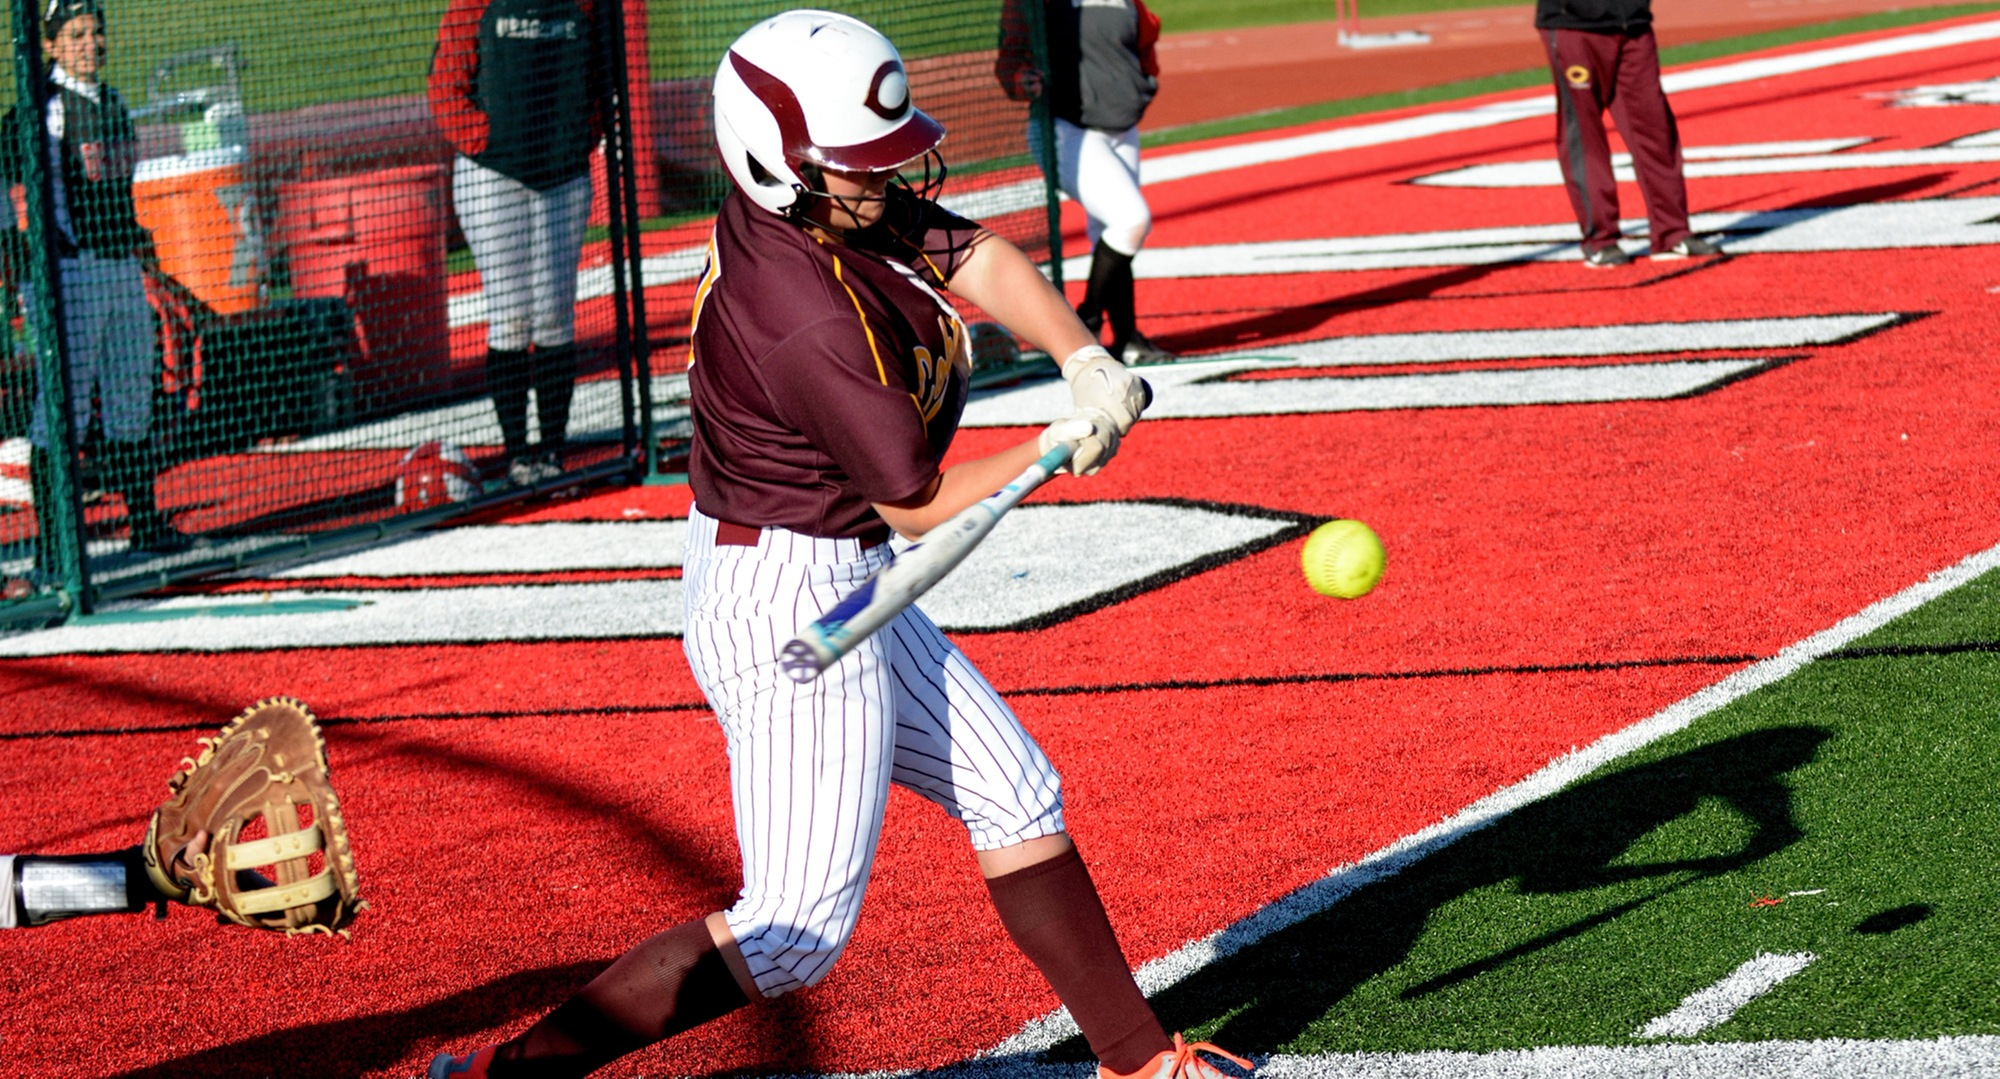 Sophomore Nicole Johannes connects on a pitch in the Cobbers' DH at MSU Moorhead. Johannes had her first home run of the season in the first game.